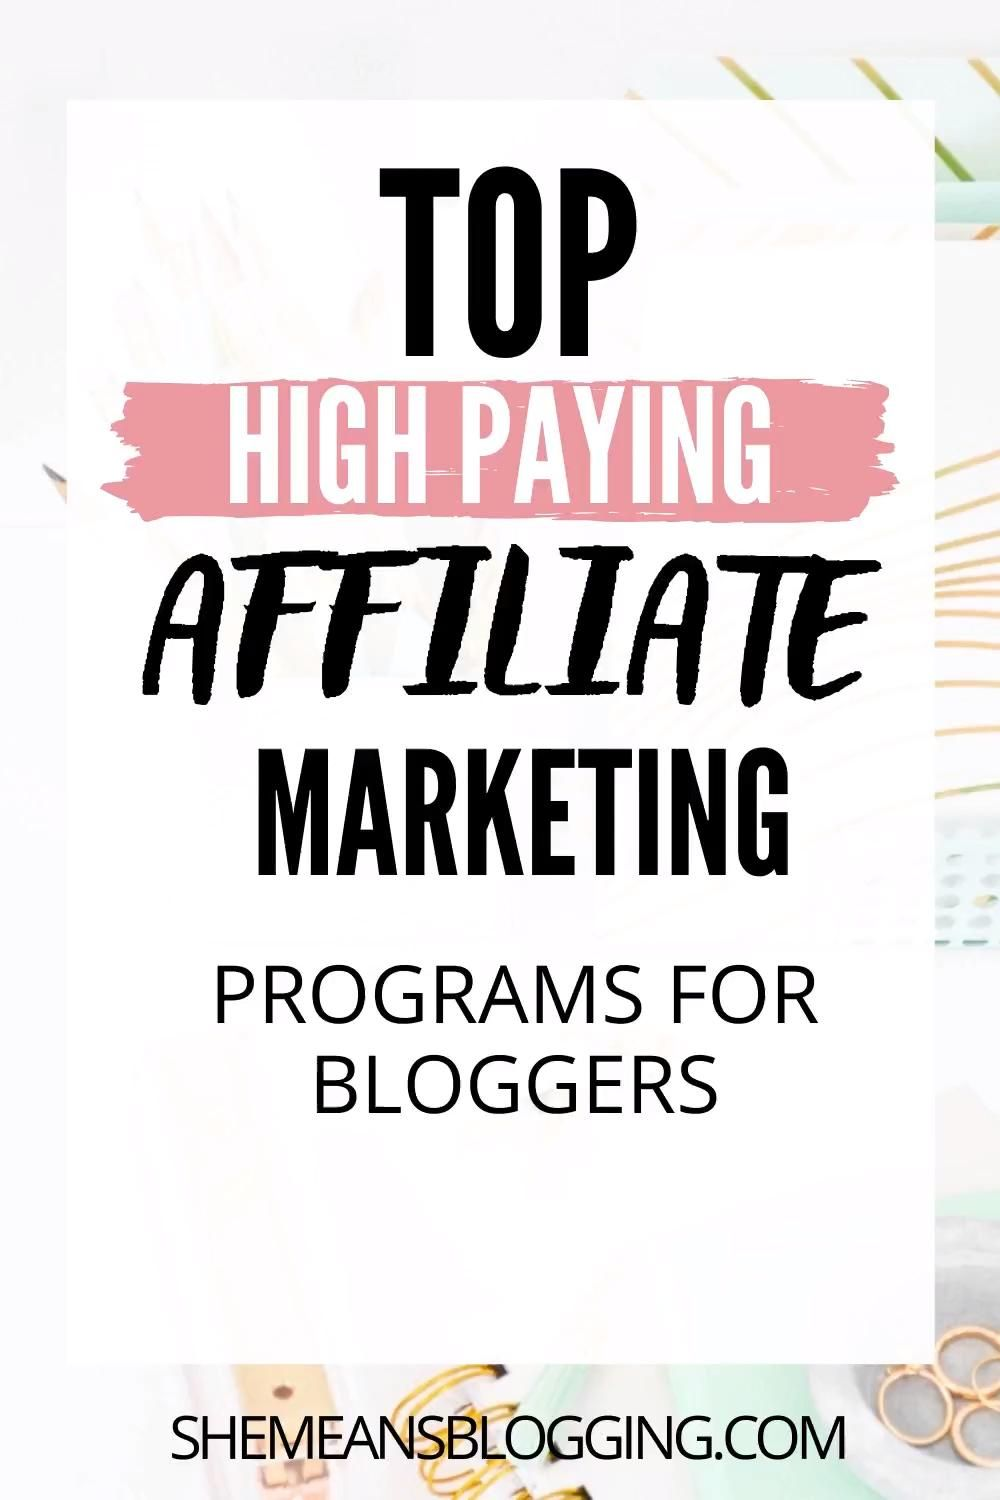 Top high paying affiliate marketing programs for b...